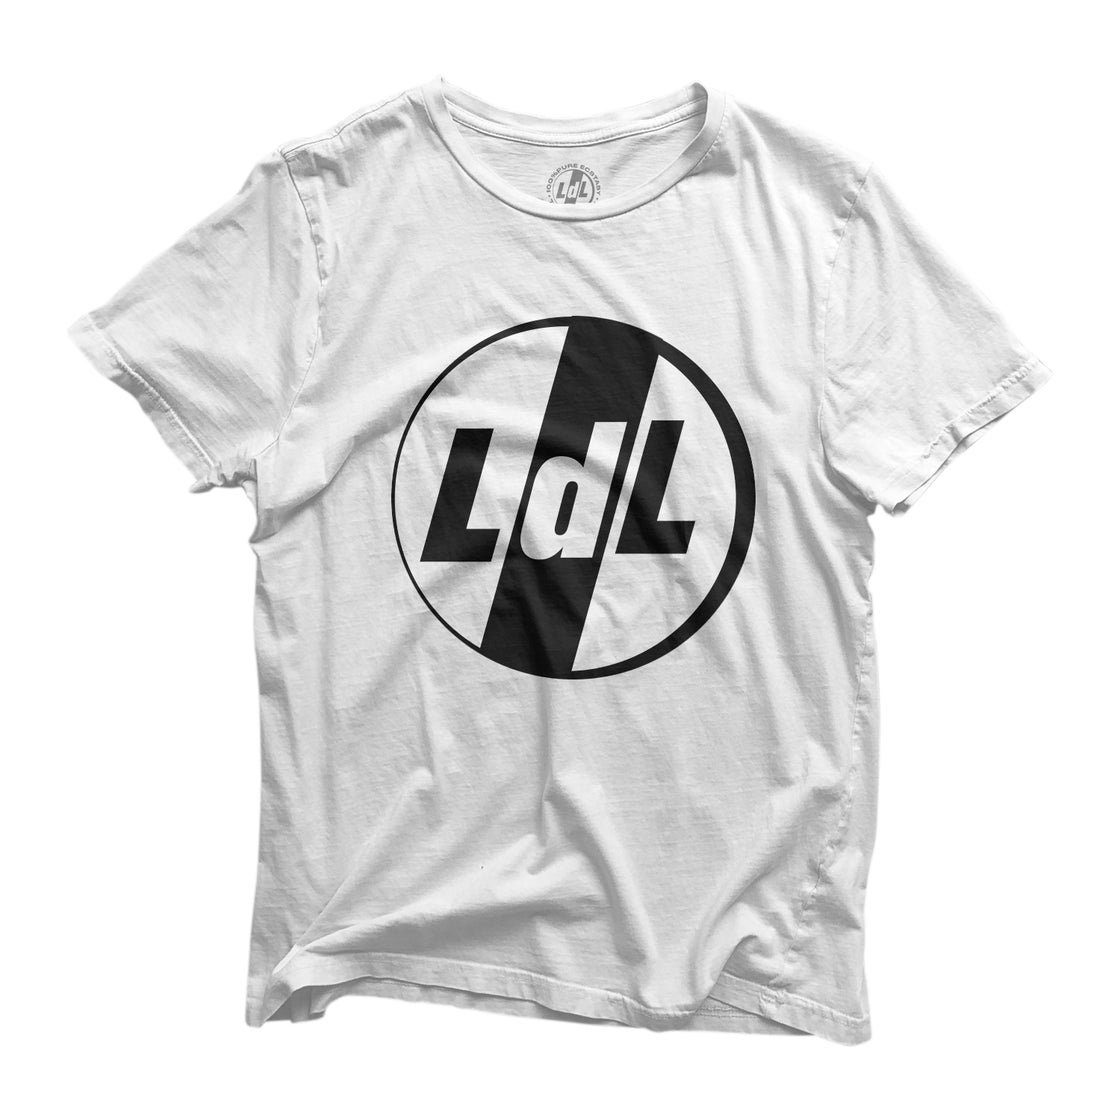 Image of LdL 2020 White Tee